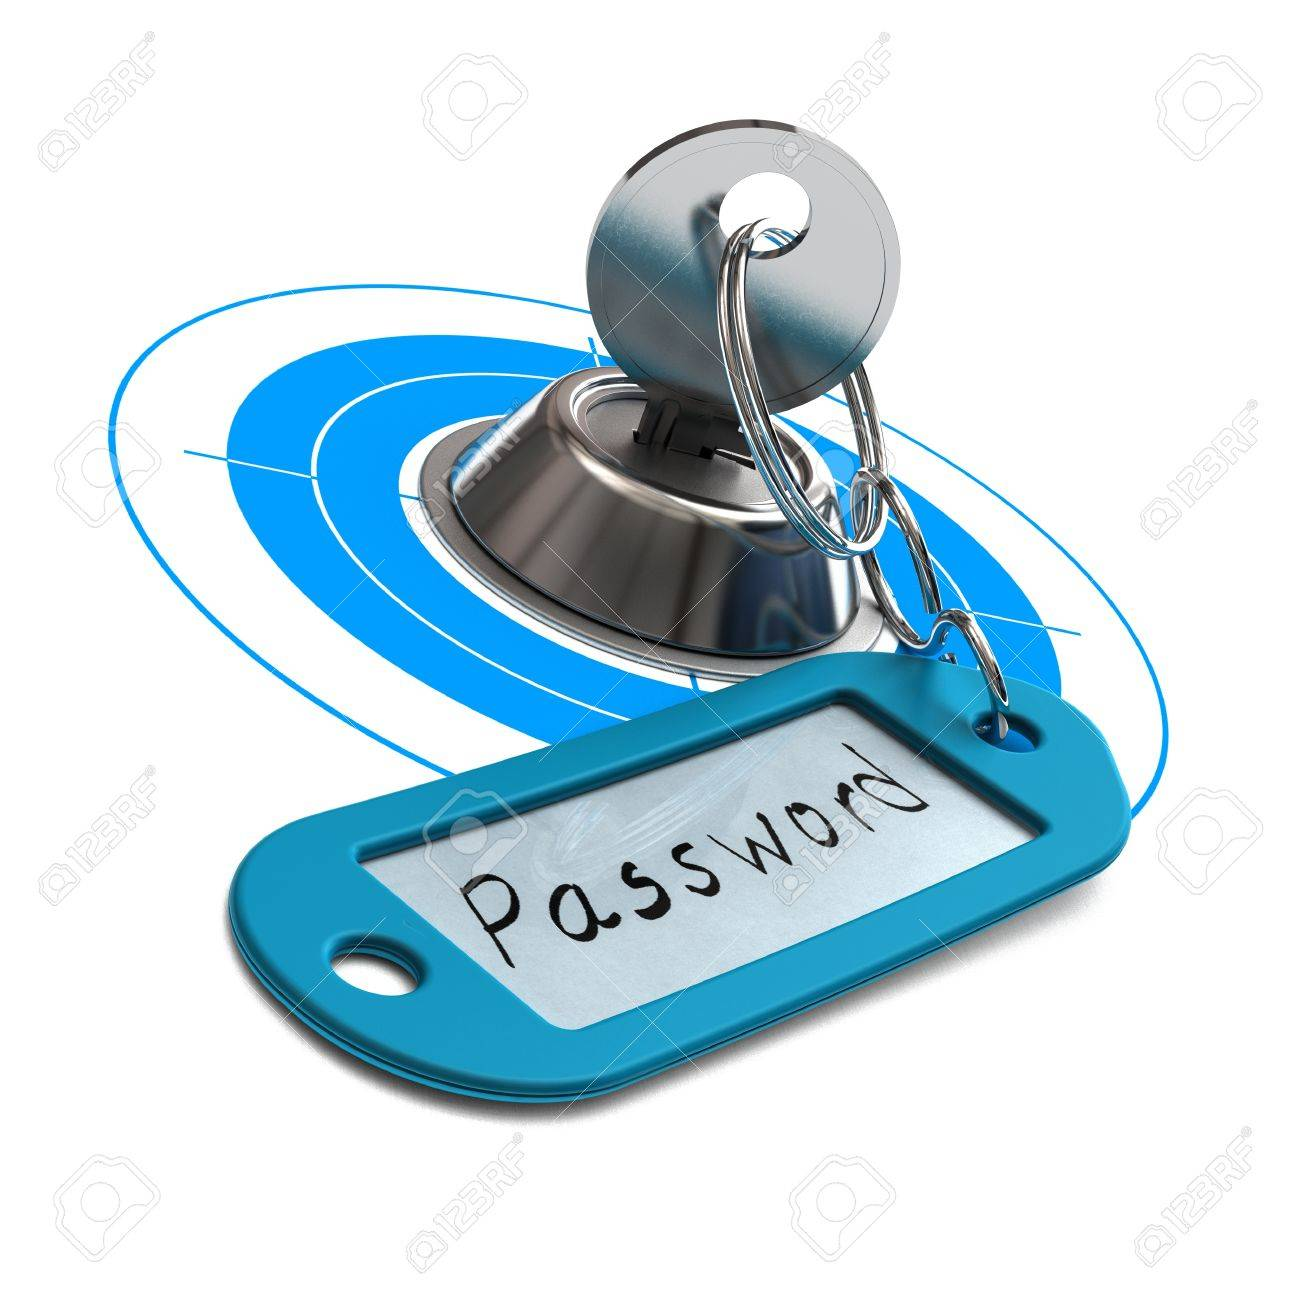 key and blue key ring withe the word password handwritten on a paper, white background, square image, concept for internet security Stock Photo - 15826113